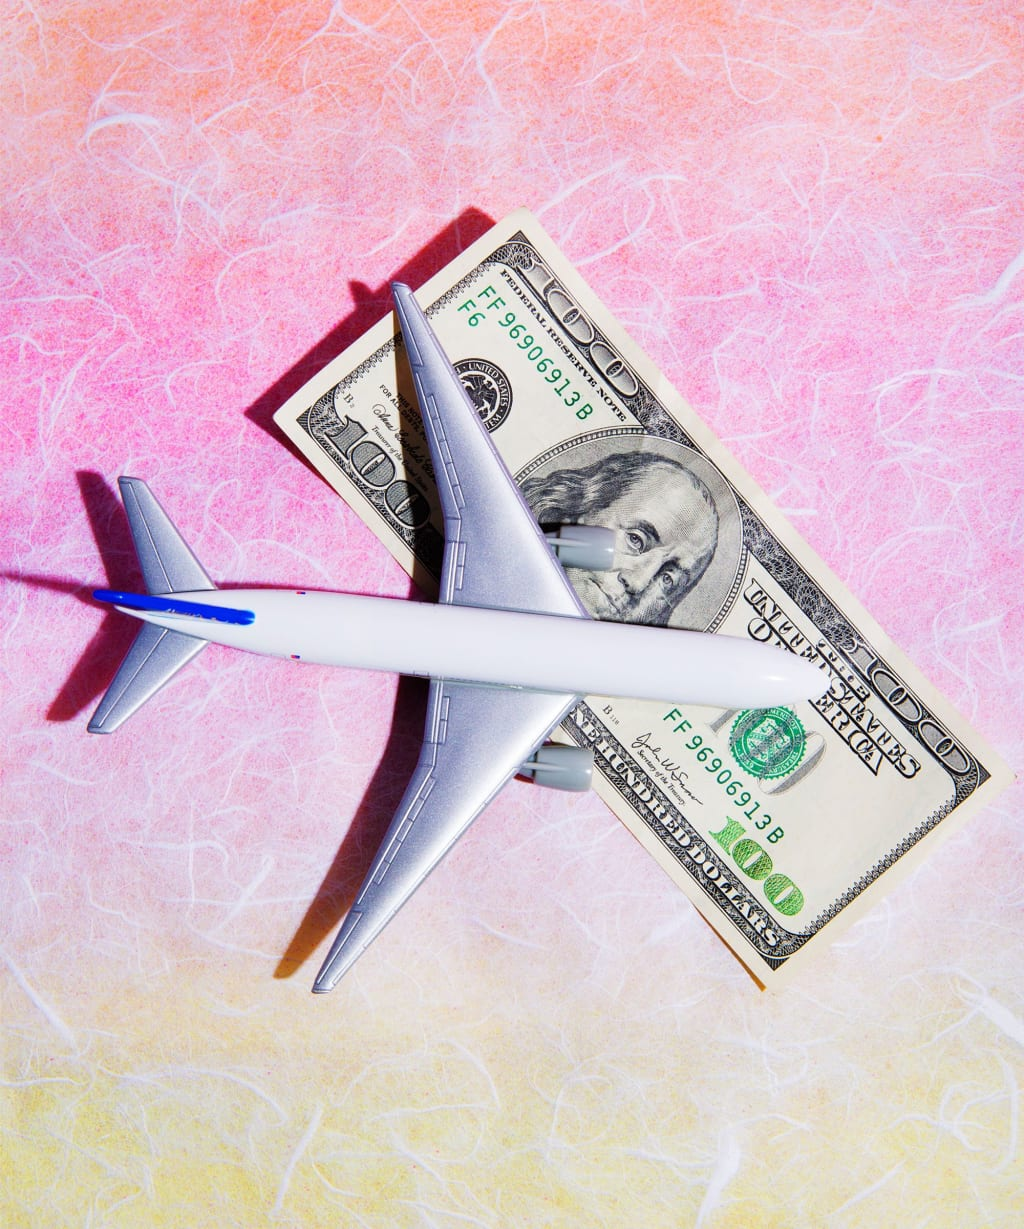 How to Determine If Travel Insurance Is Worth It